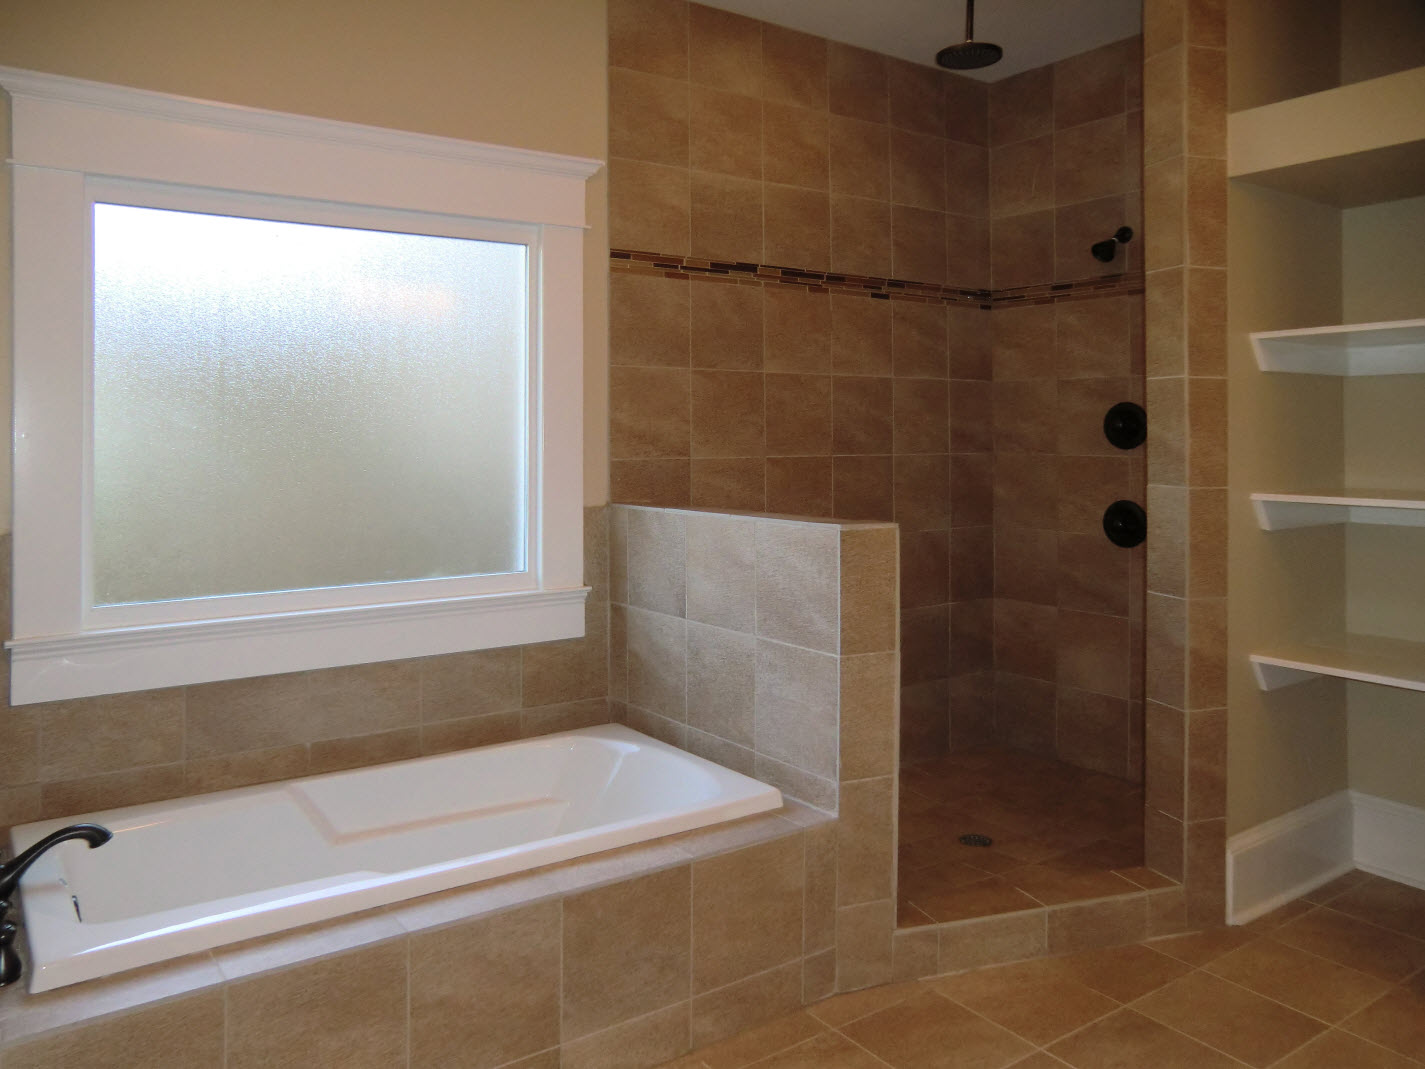 The Master Bath Features His N Hers Vanities A Private Toilet Room Soaking Tub And Oversized Shower Of Course There S A Big Walk In Closet